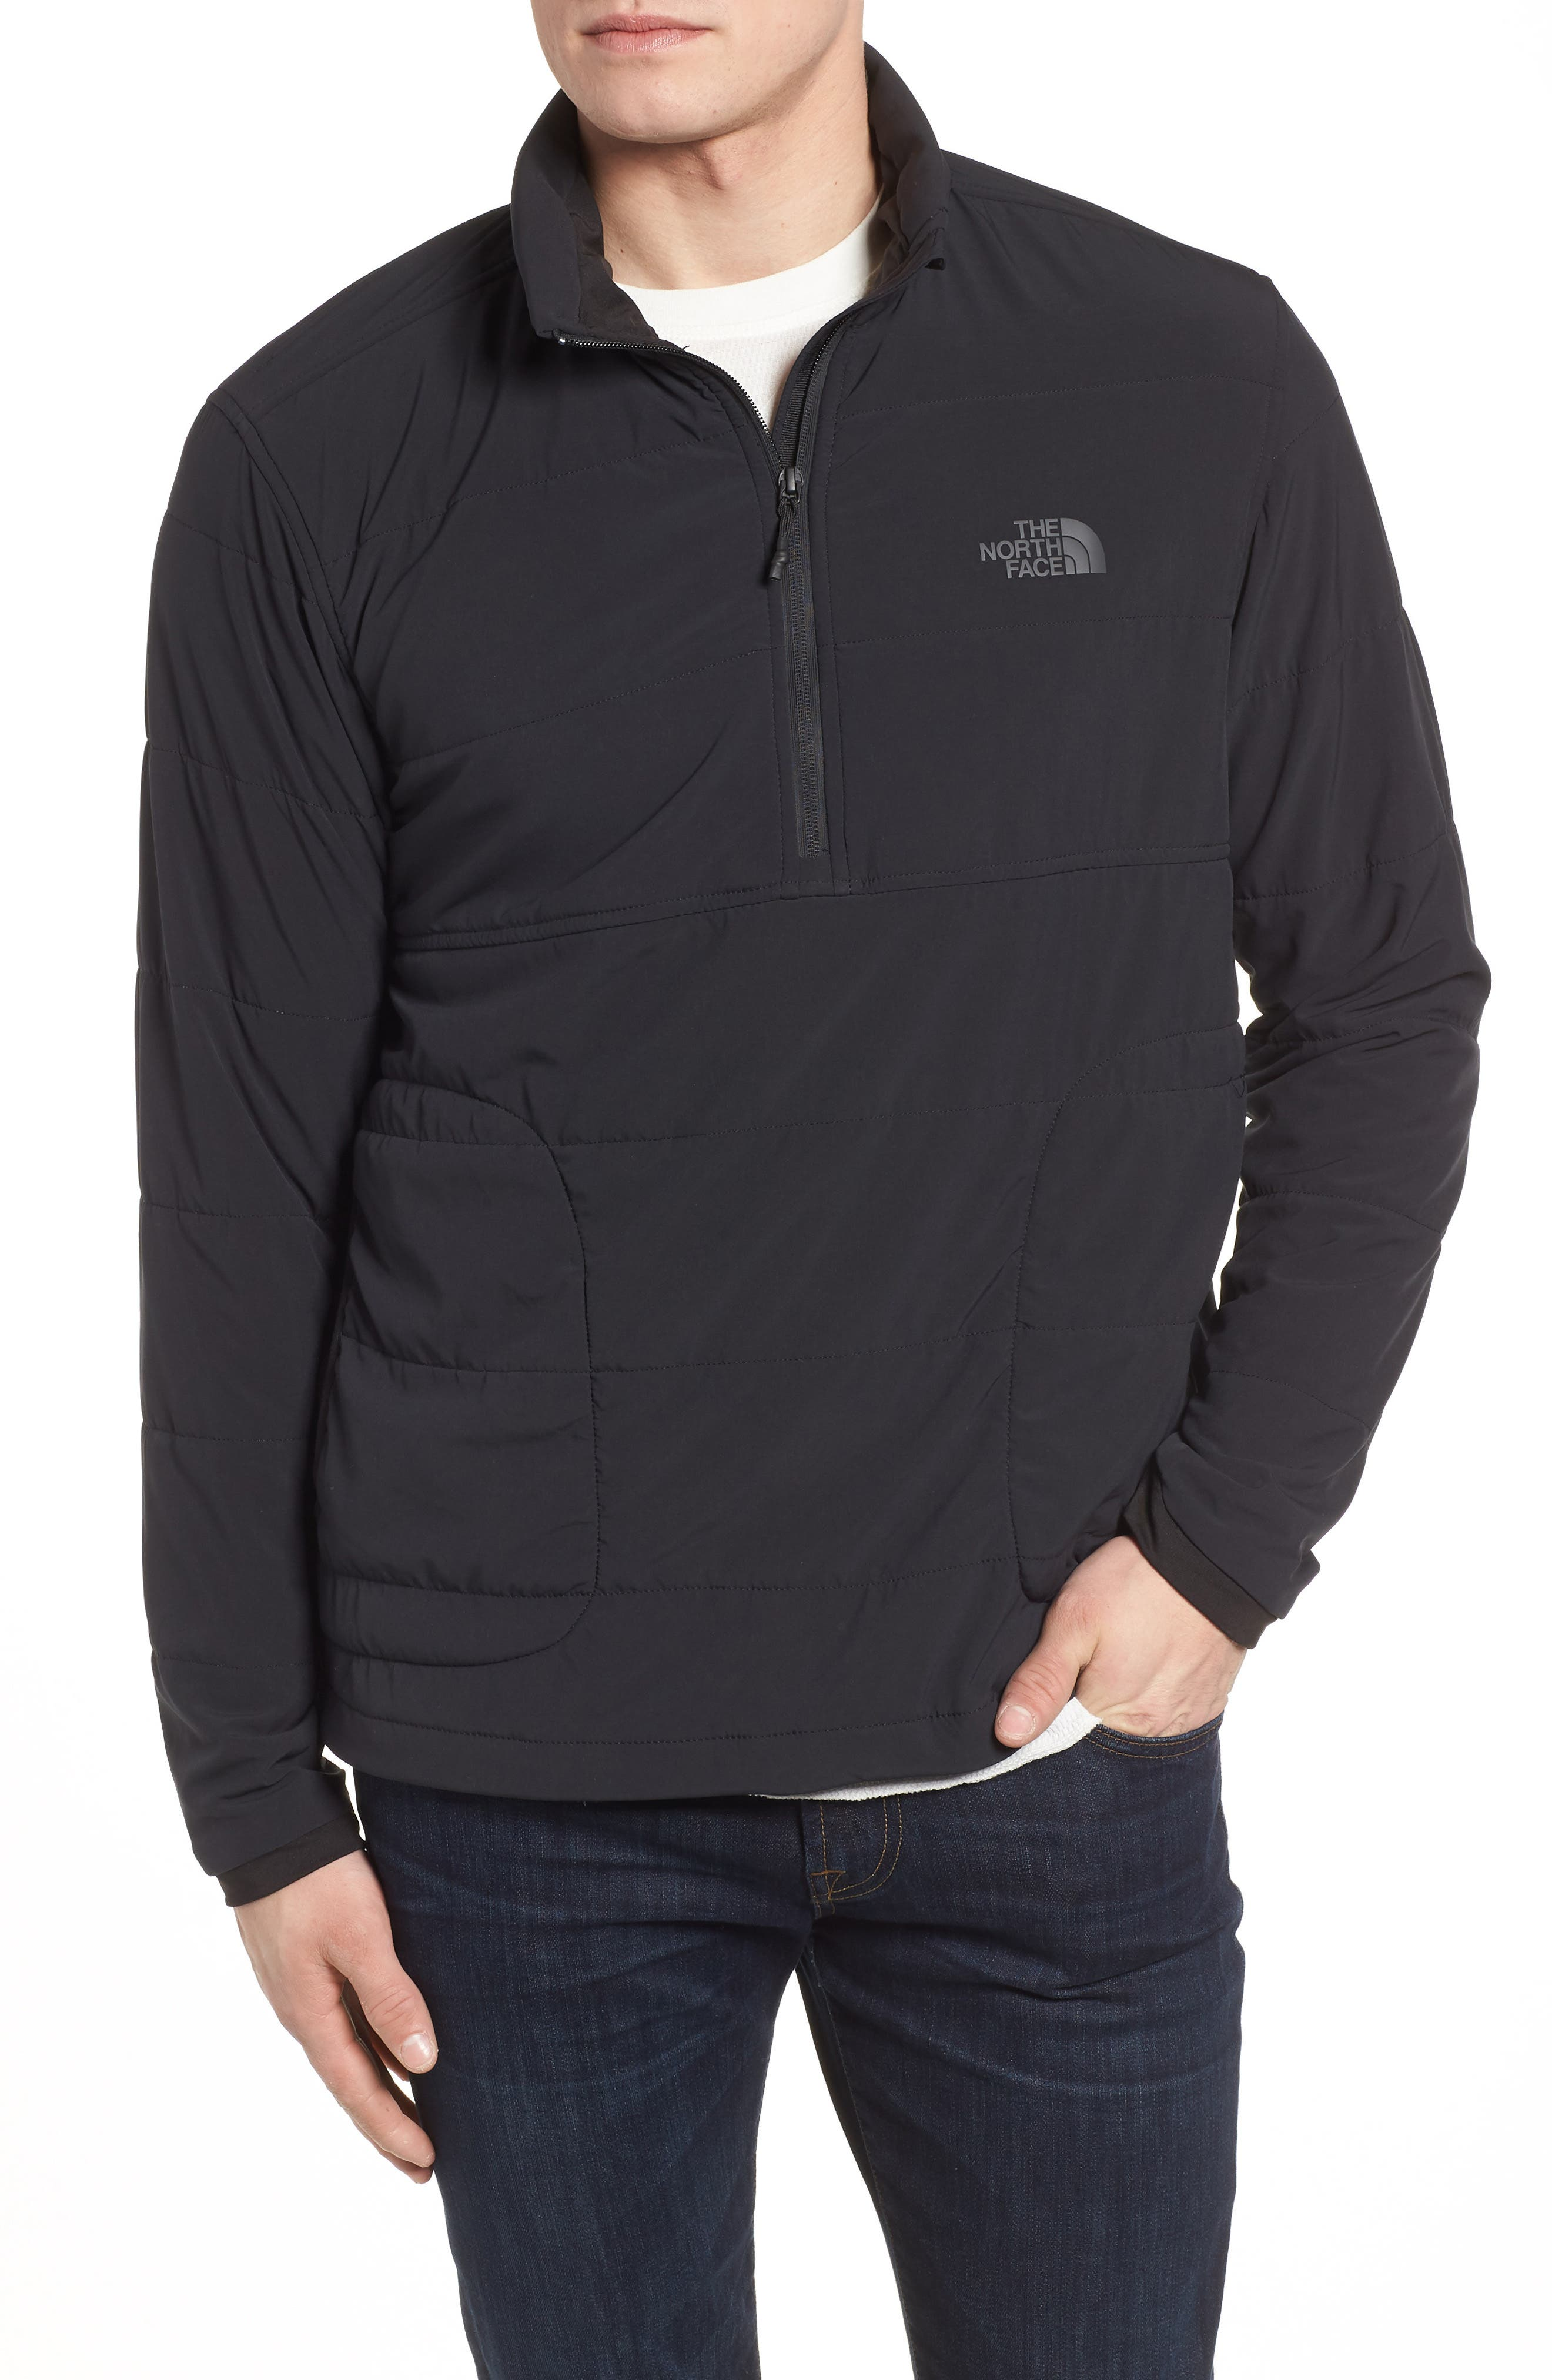 THE NORTH FACE,                             Mountain Quarter Zip Pullover,                             Main thumbnail 1, color,                             001